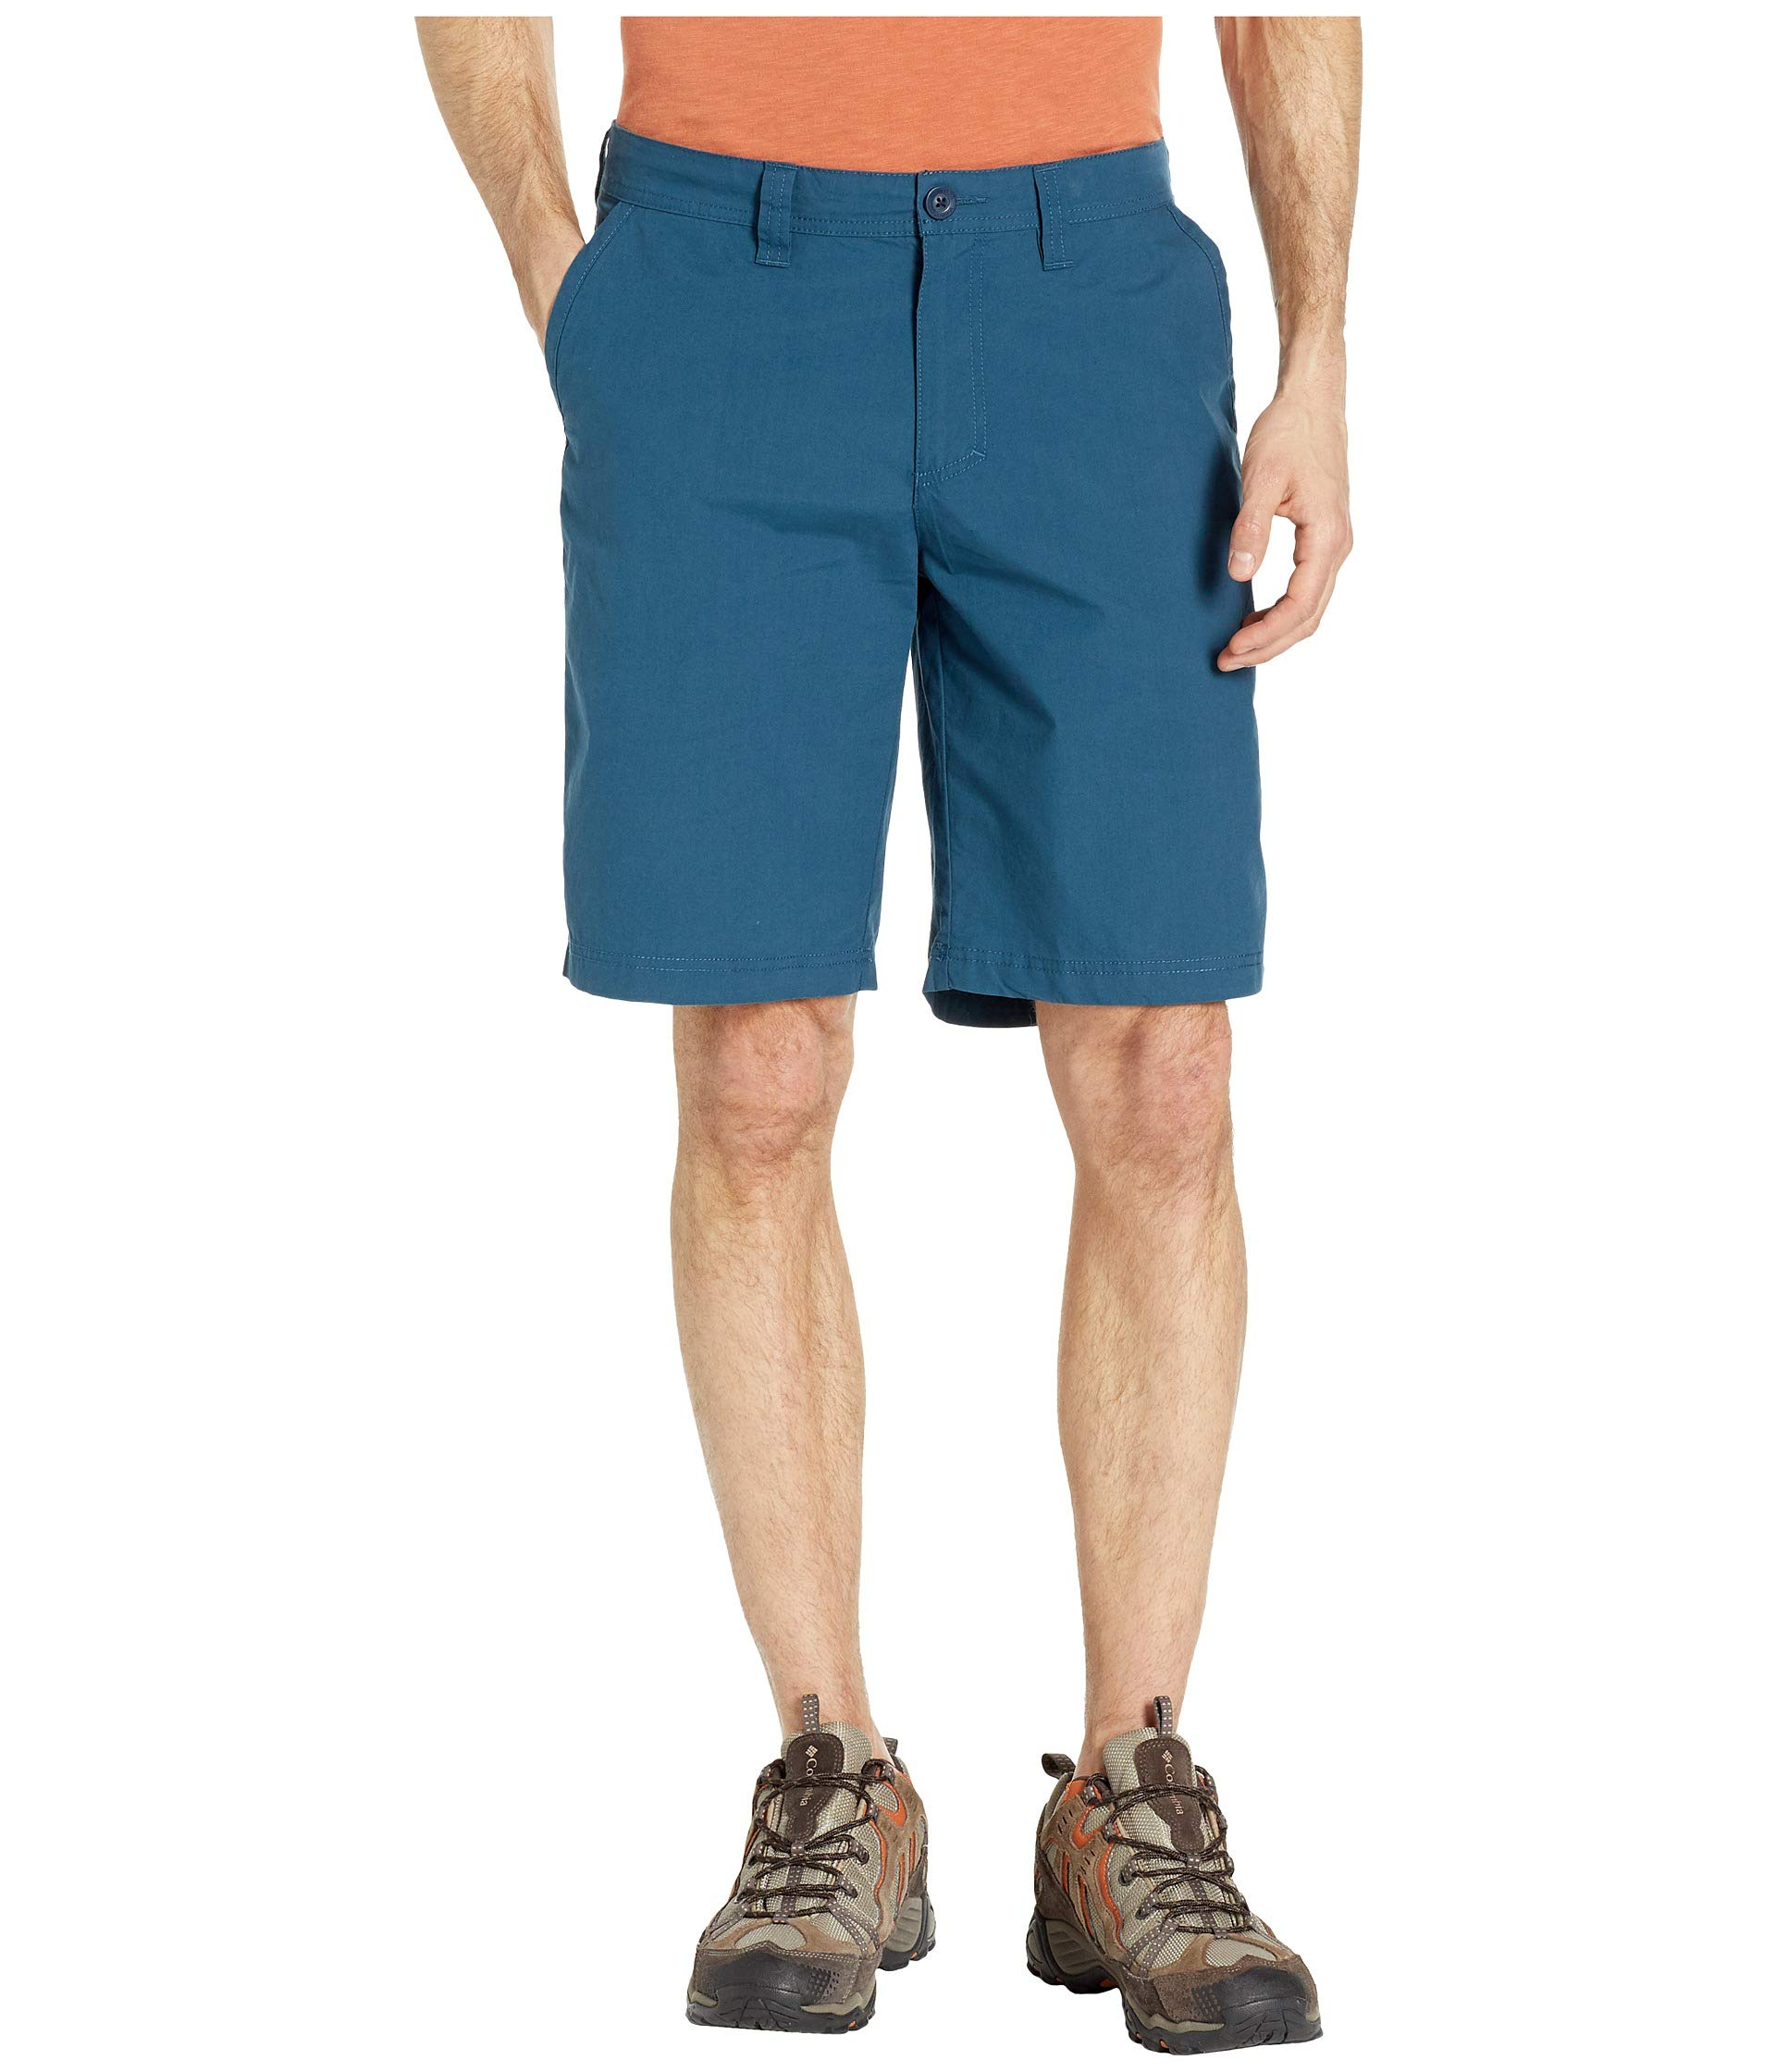 Columbia Men's Washed Out Chino Short, Petrol Blue, 34x8 by Columbia